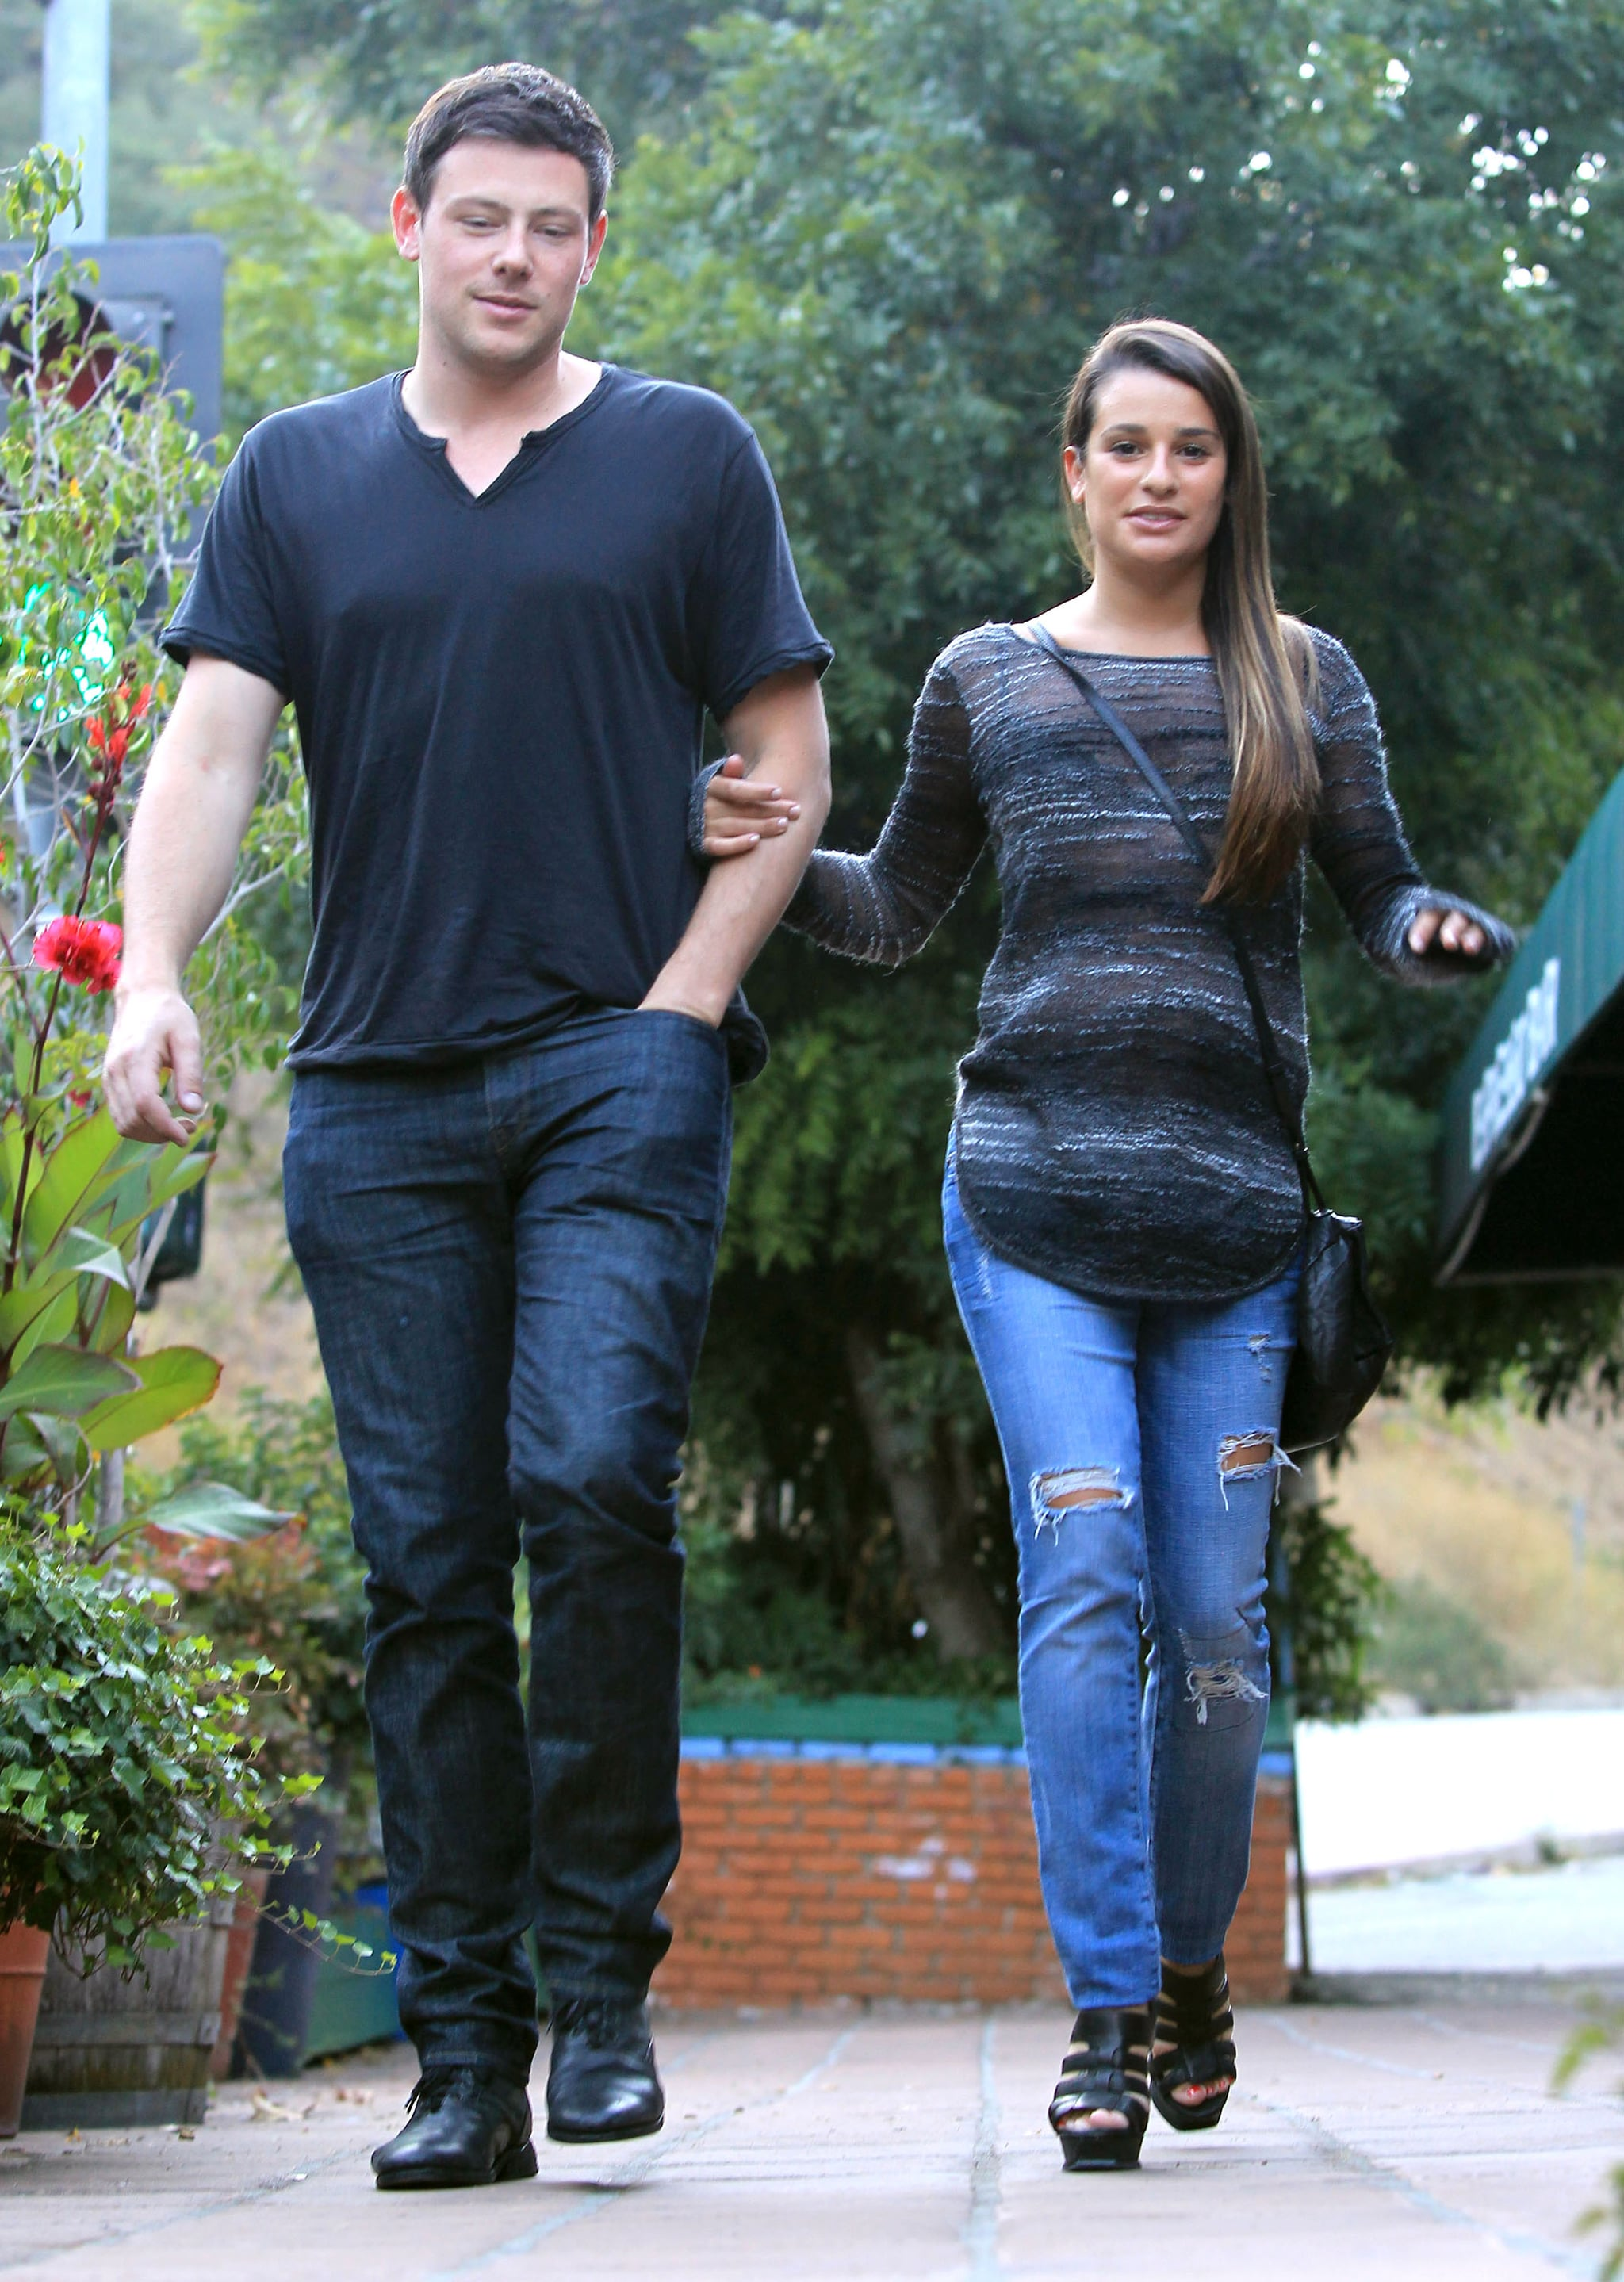 Glee's Cory Monteith and Lea Michele had a meal.